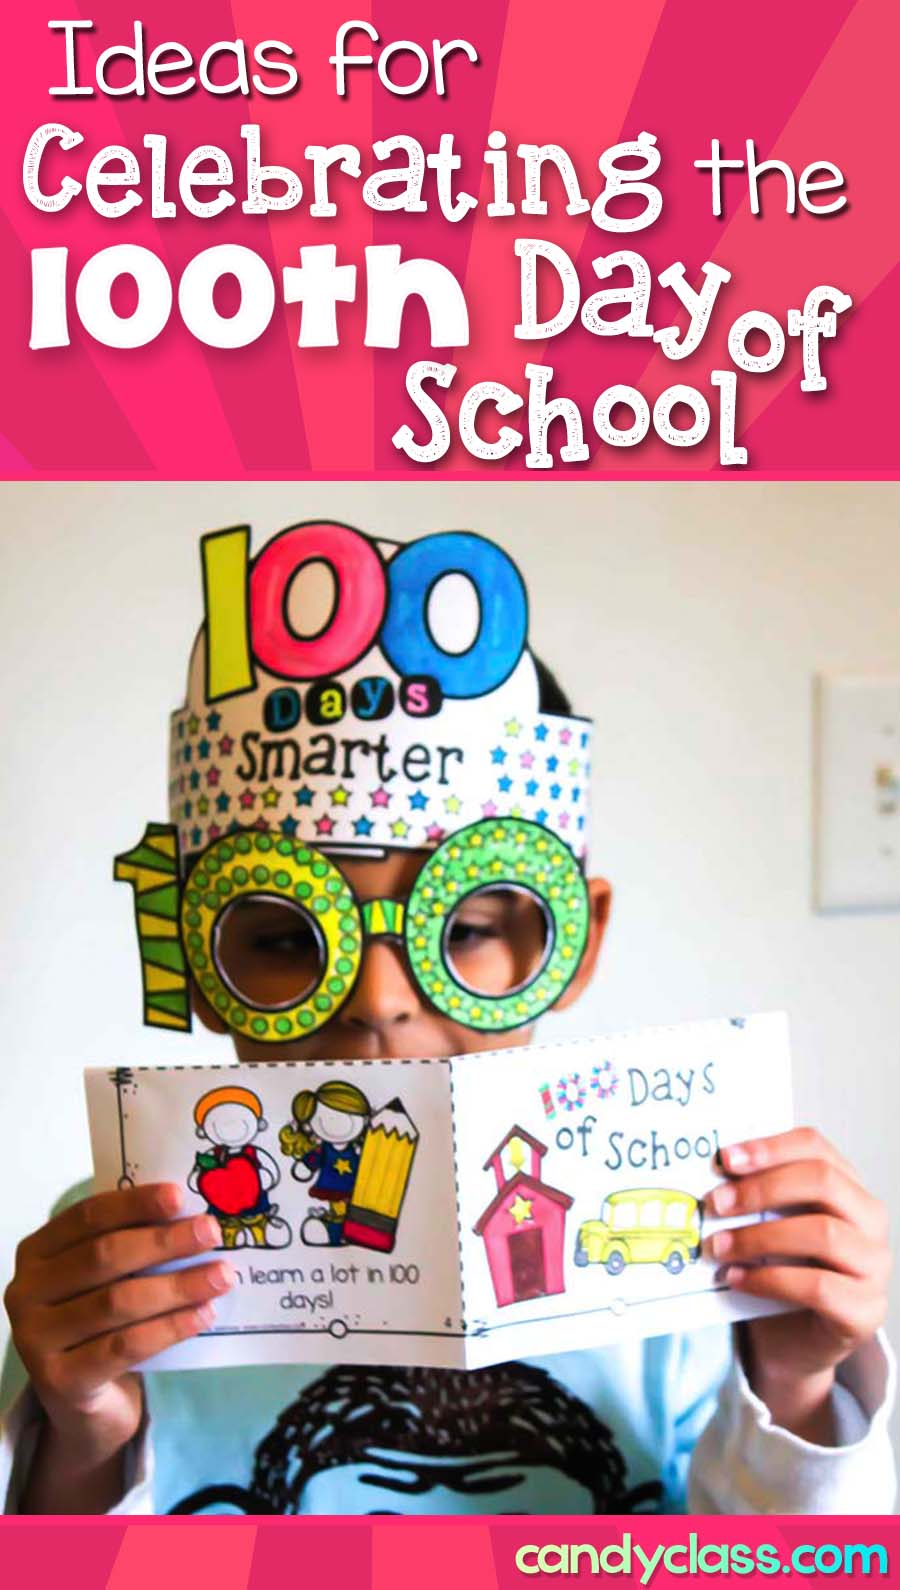 Ideas for Celebrating the 100th Day of School